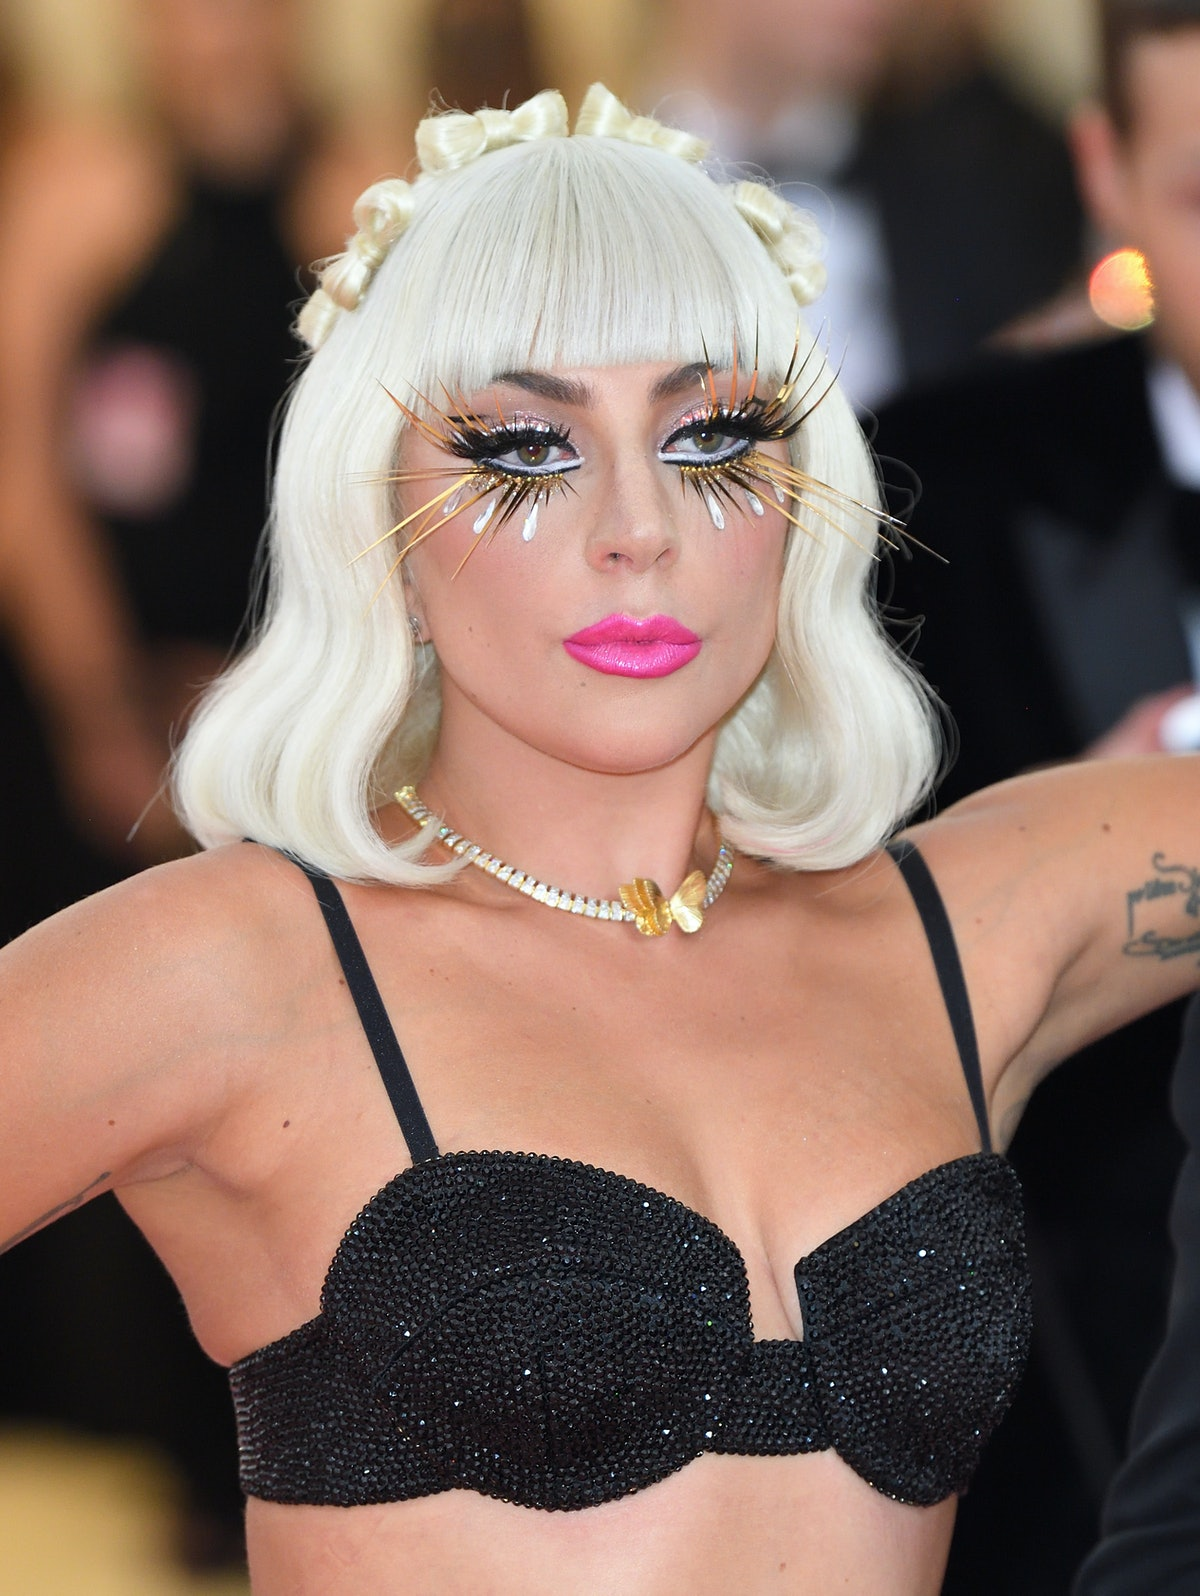 NEW YORK, NEW YORK - MAY 06: Lady Gaga arrives for the 2019 Met Gala celebrating Camp: Notes on Fash...